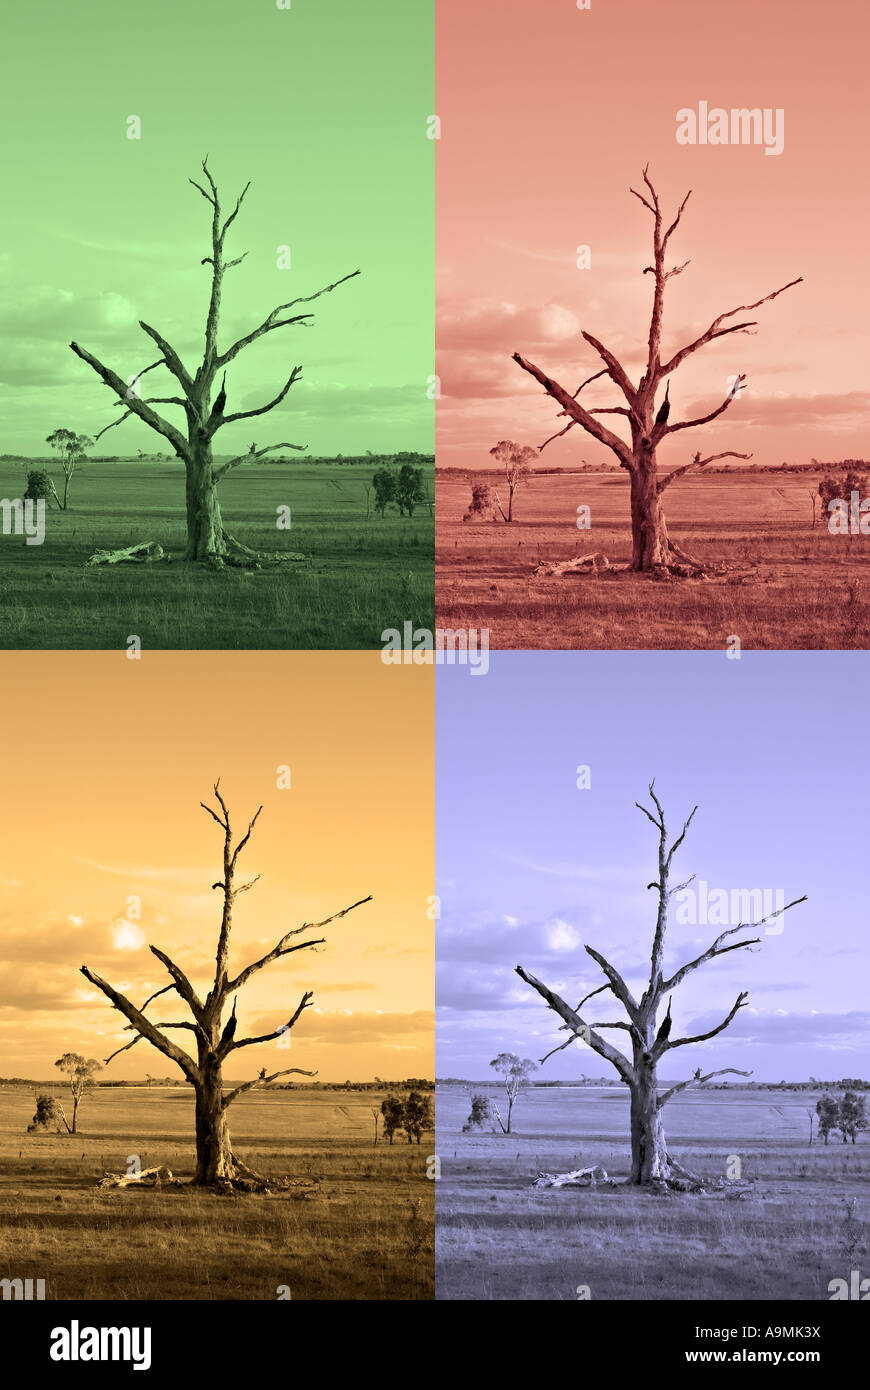 an old farm with dead tree rendered to represent the four seasons - Stock Image